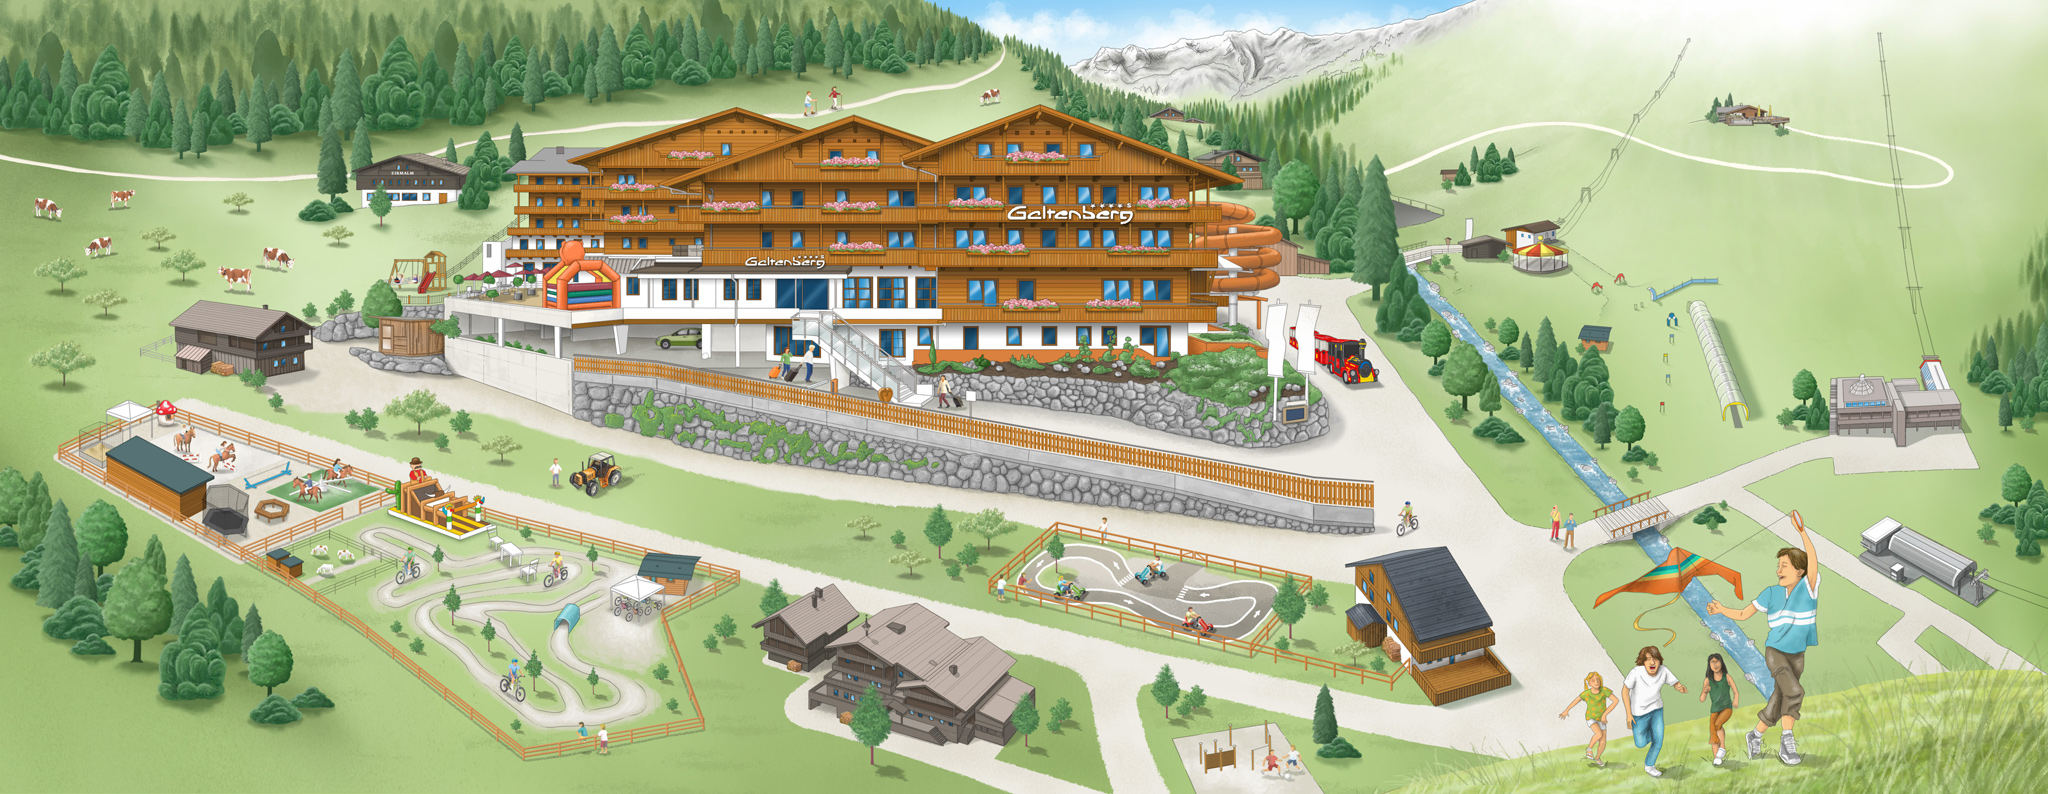 Illustration Webdesign Wellnesshotel Österreich